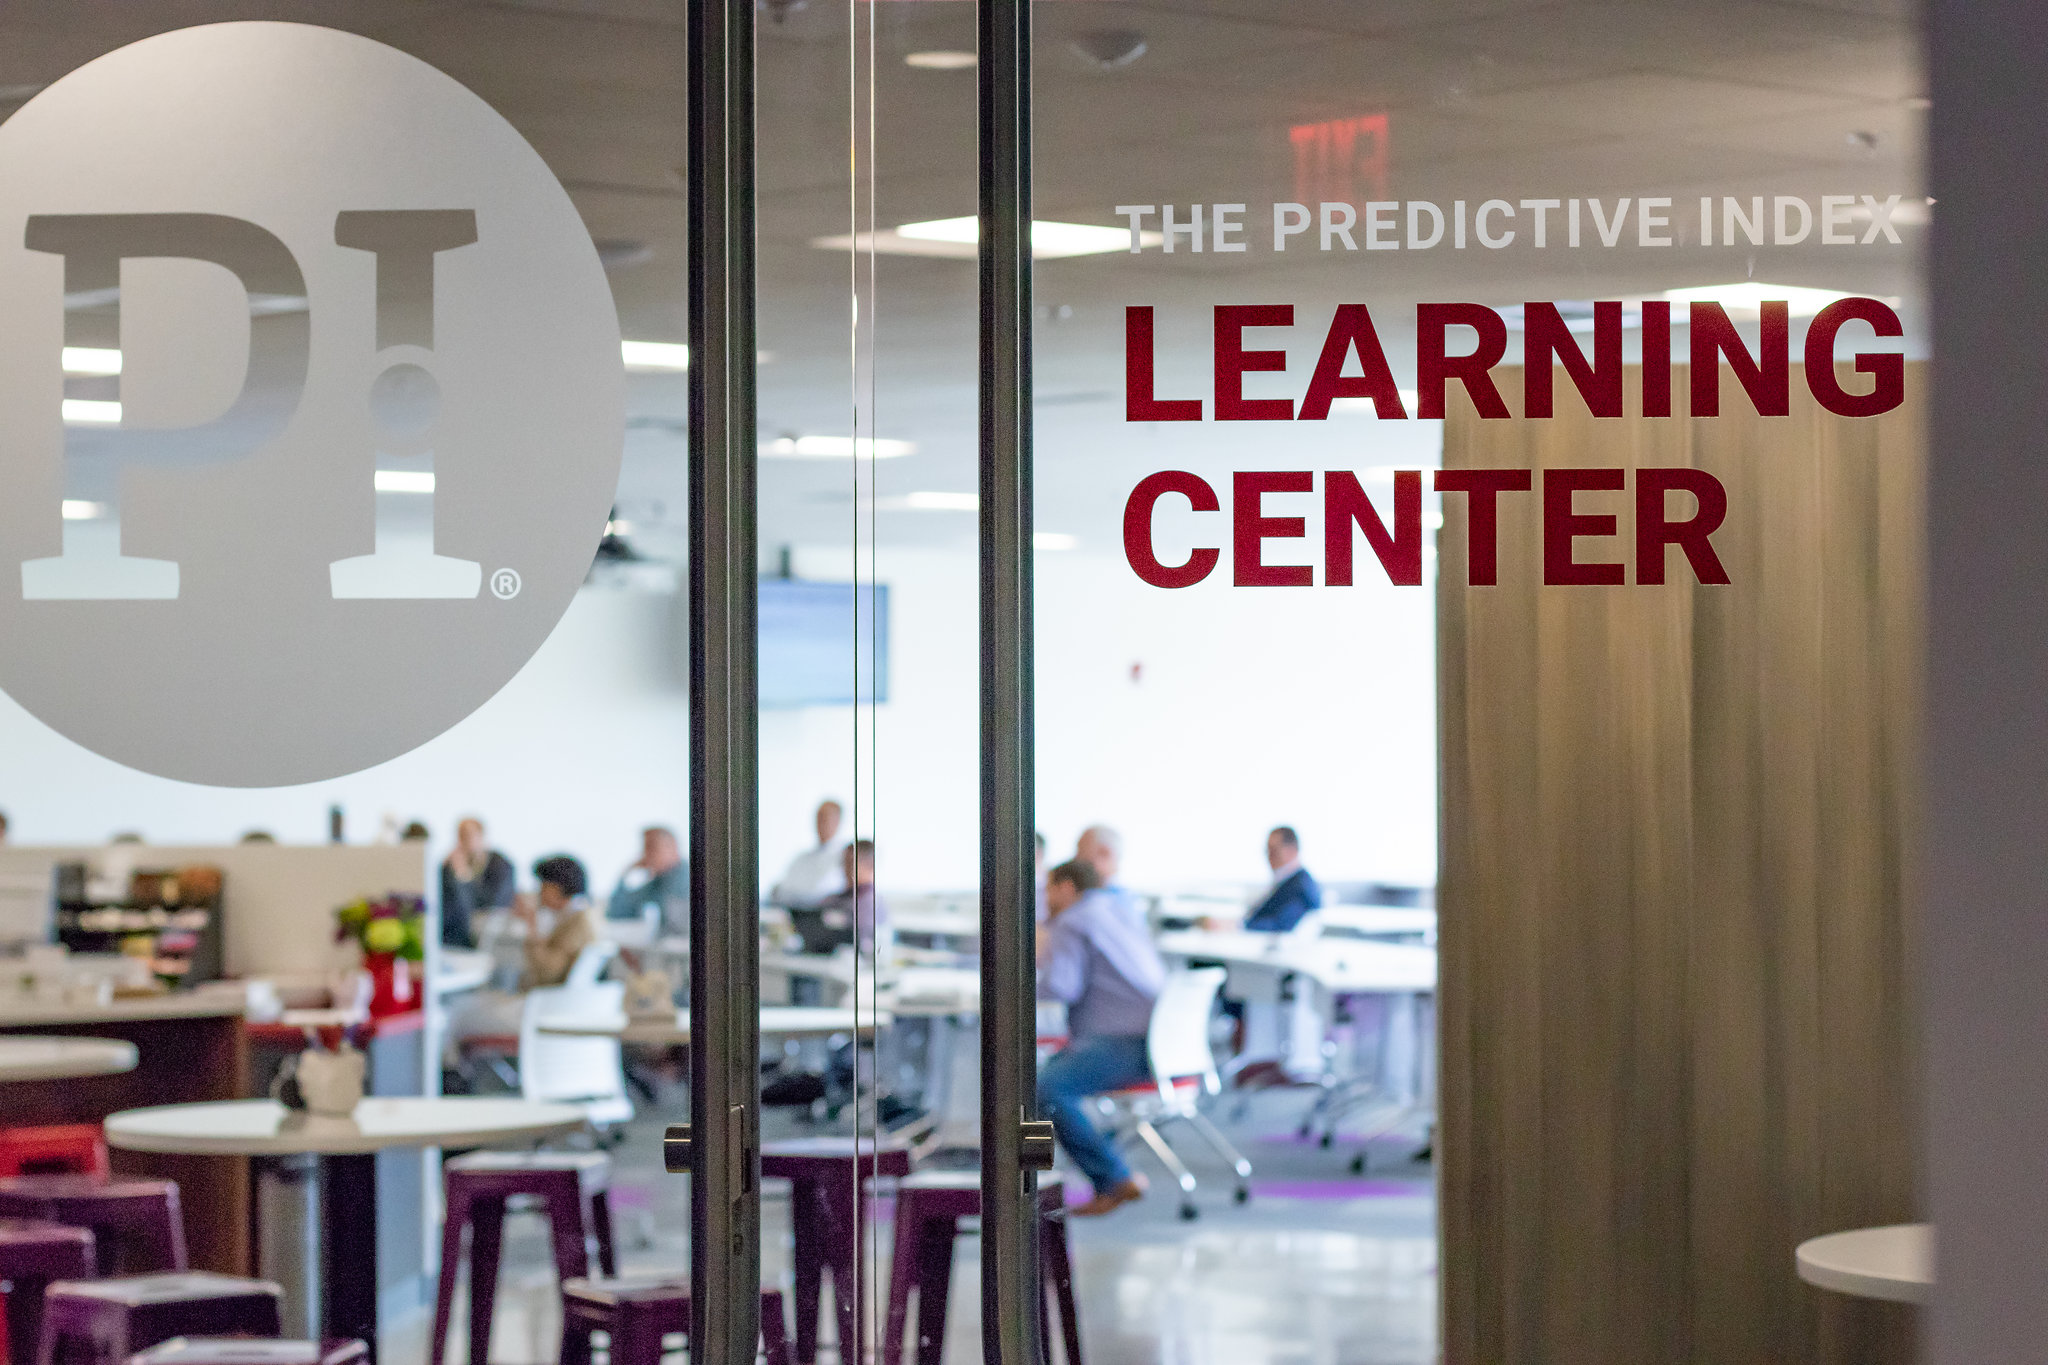 PI Learning Center